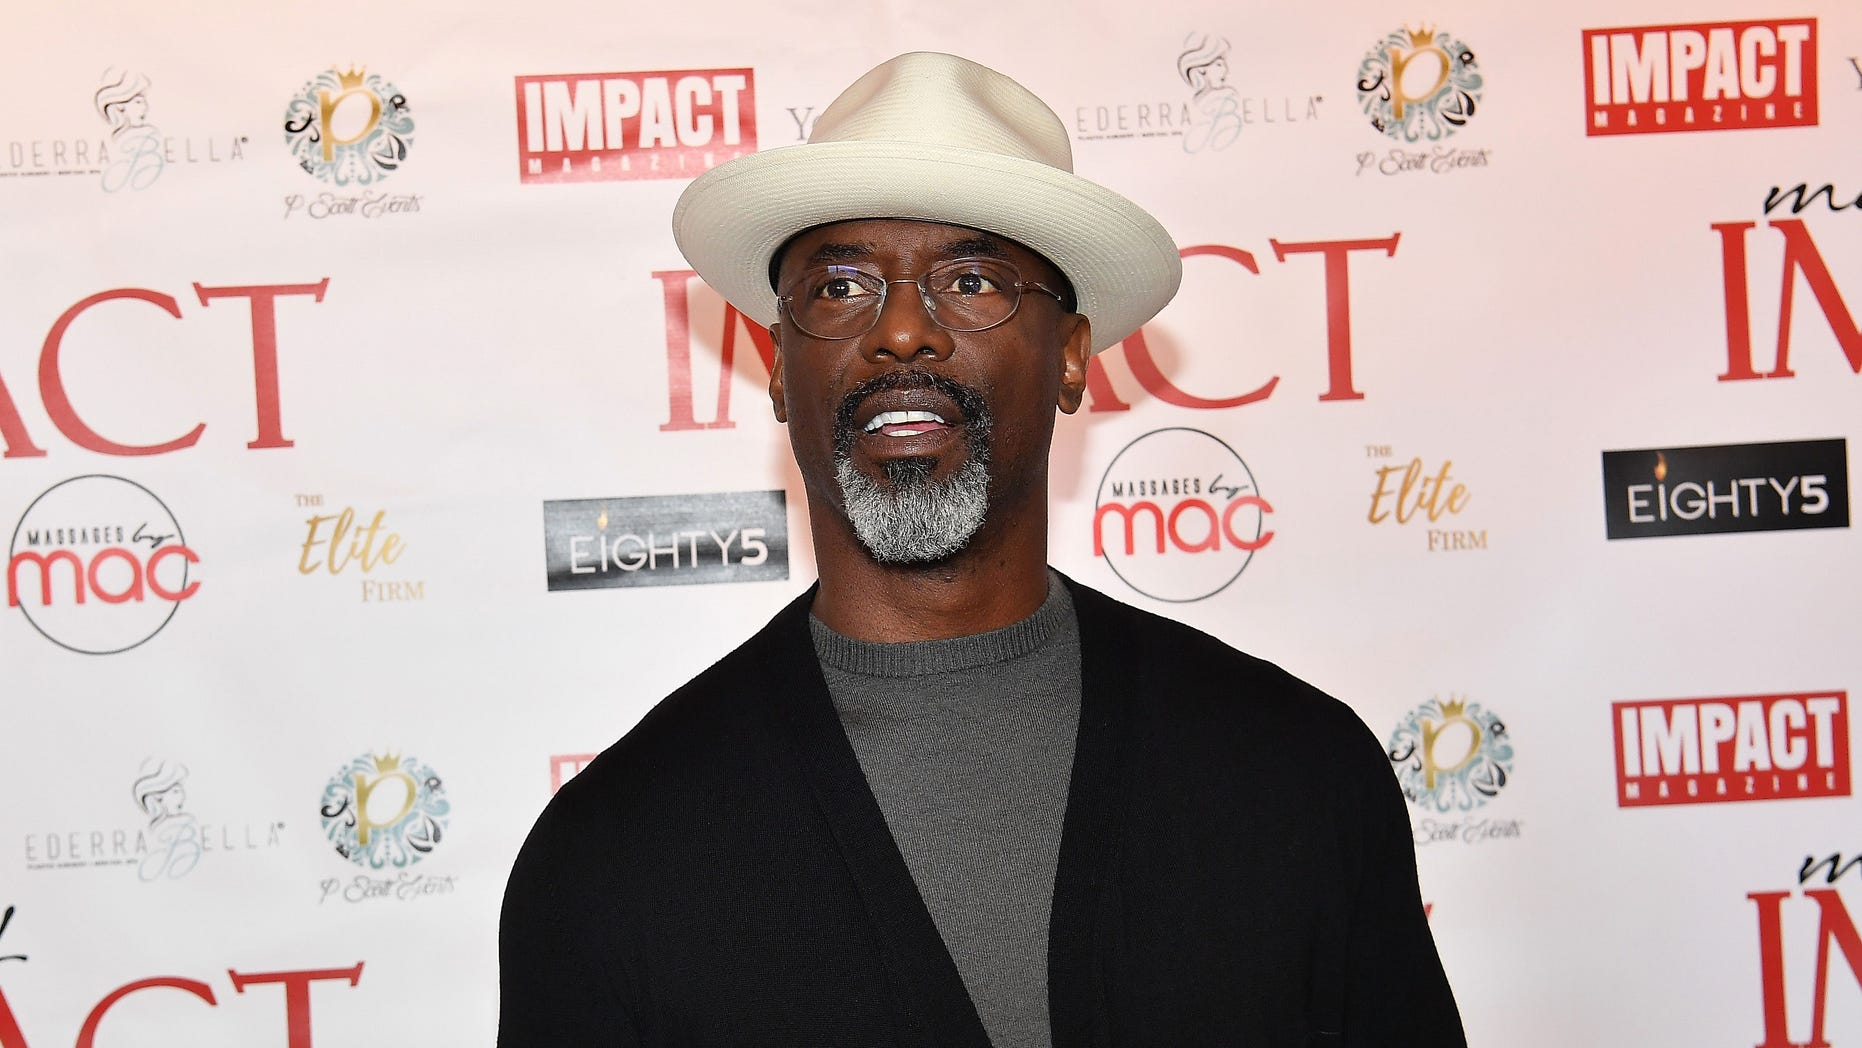 Actor Isaiah Washington attended a white house celebration of the first step law, praising President Trump.